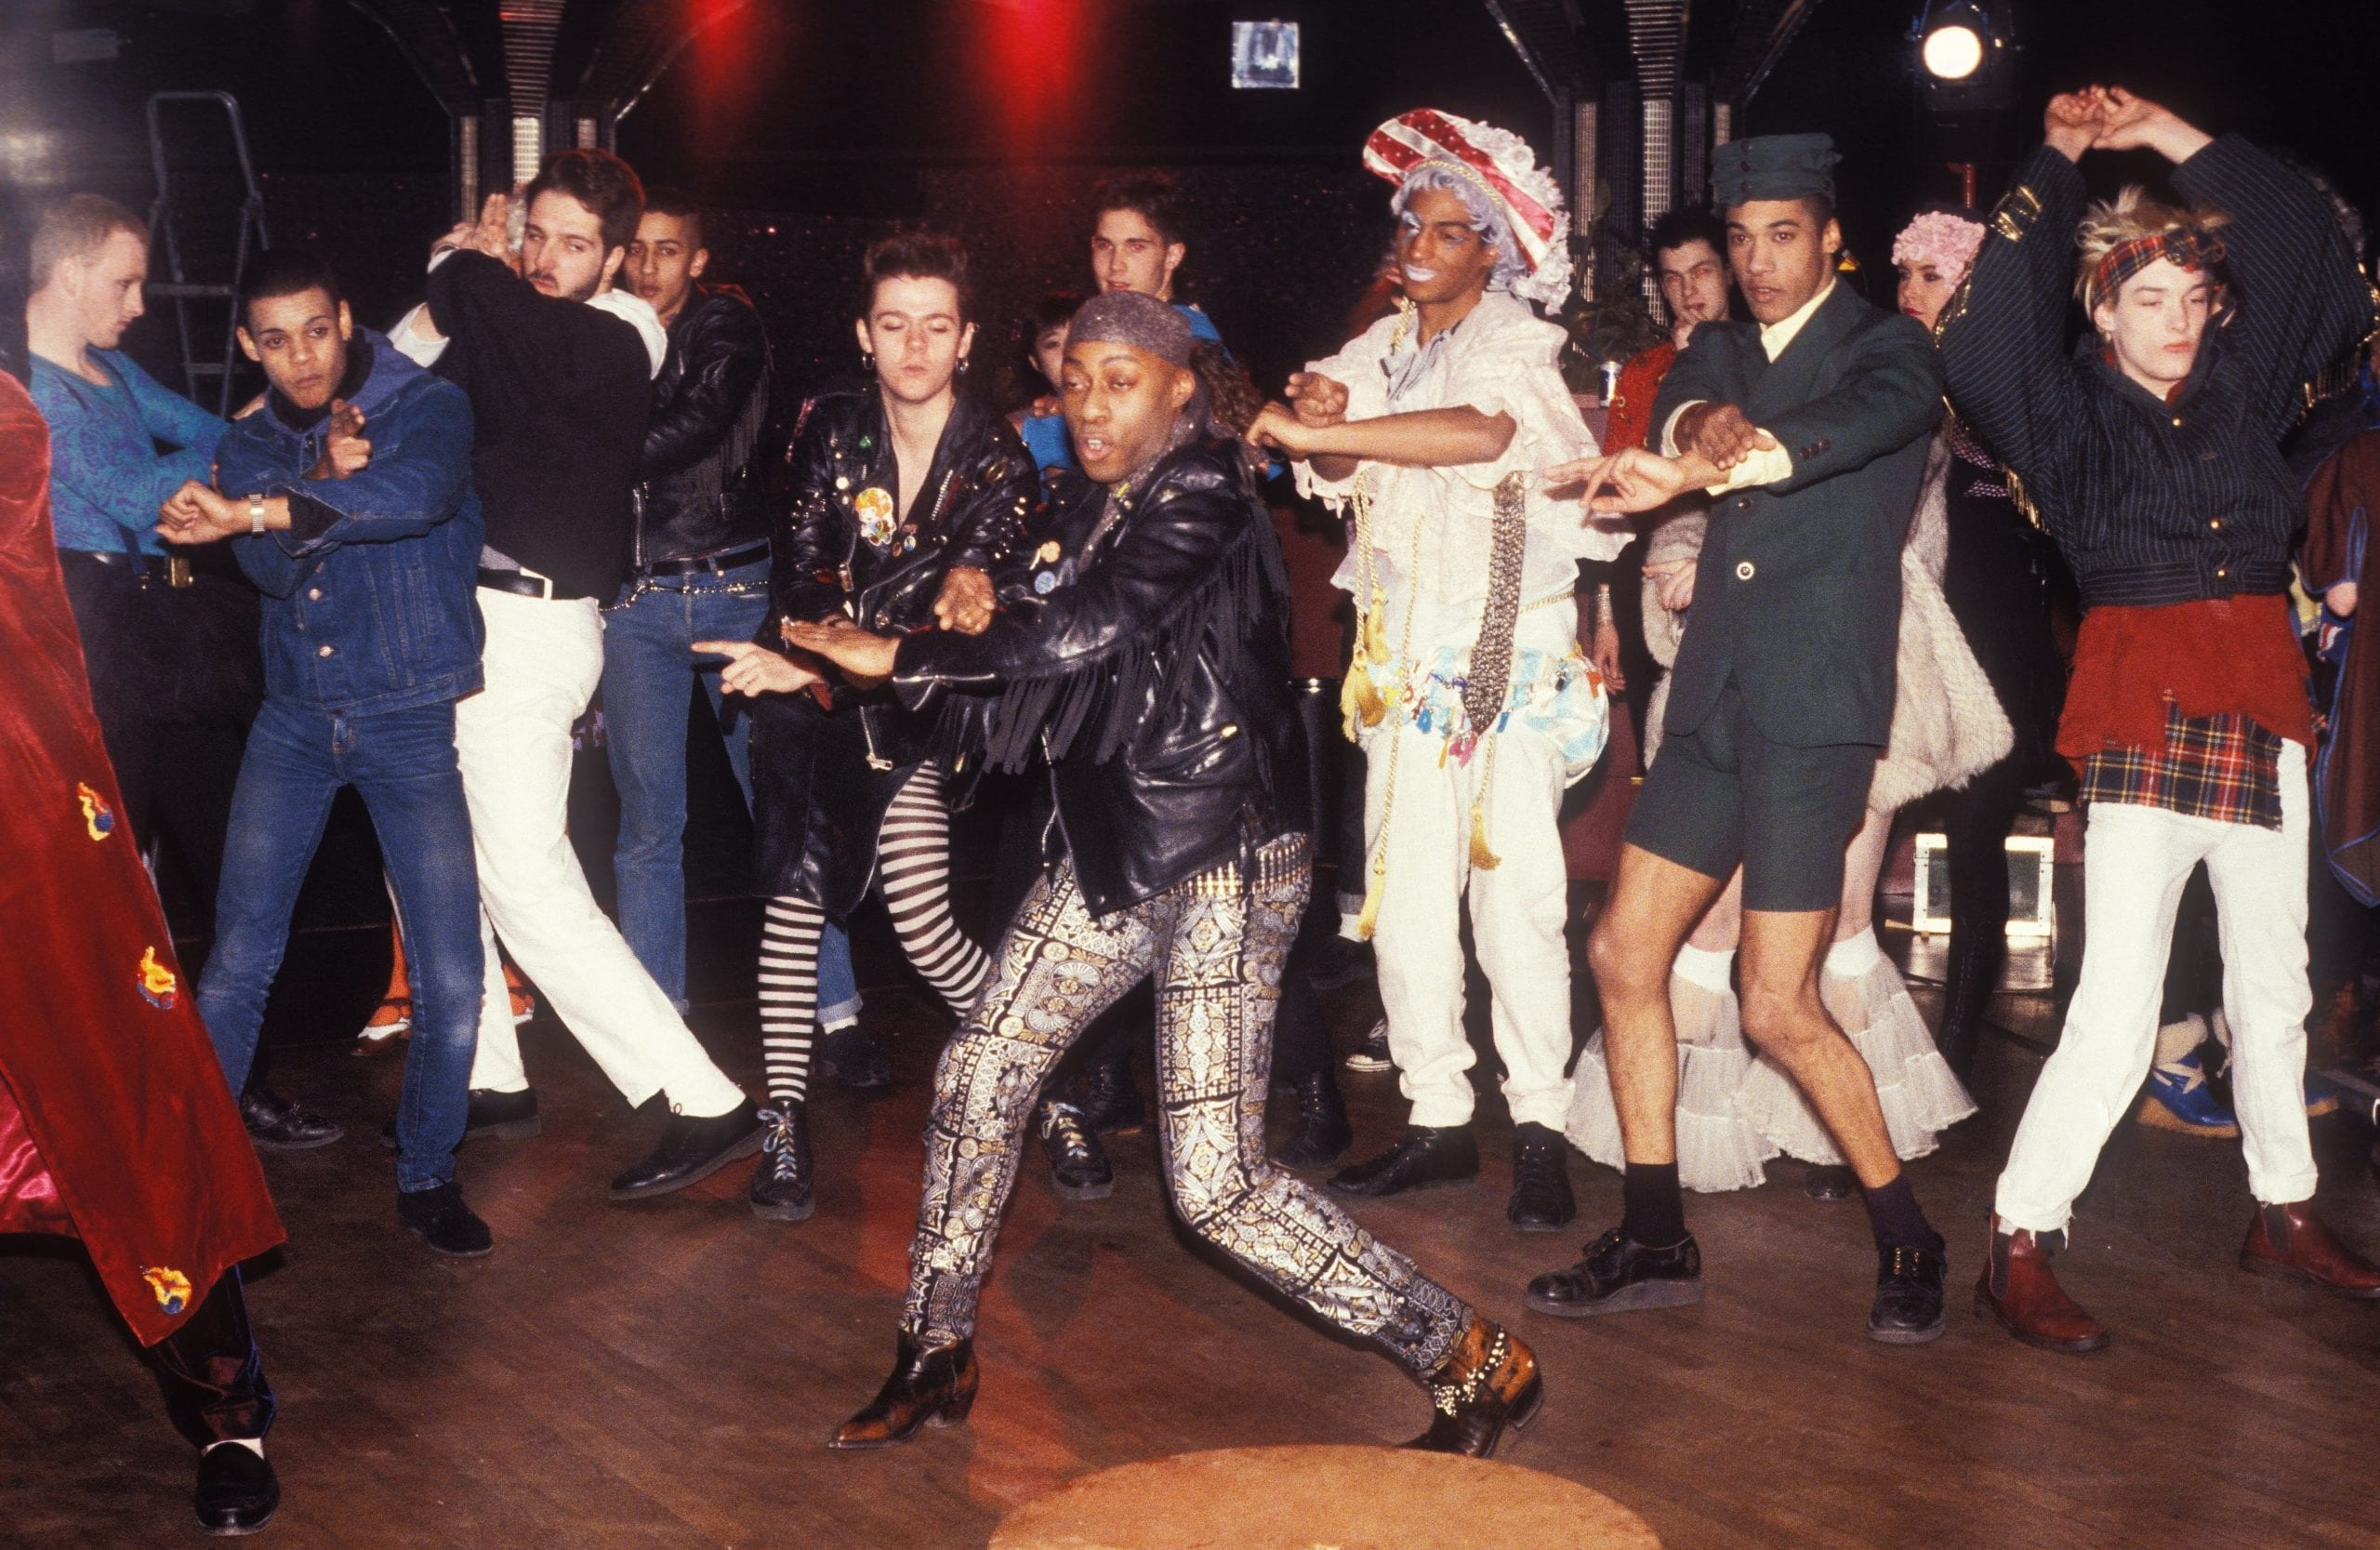 Clubbers dancing at Leigh Bowery's club Taboo, London, UK, 1986 © Hartnett/PYMCA